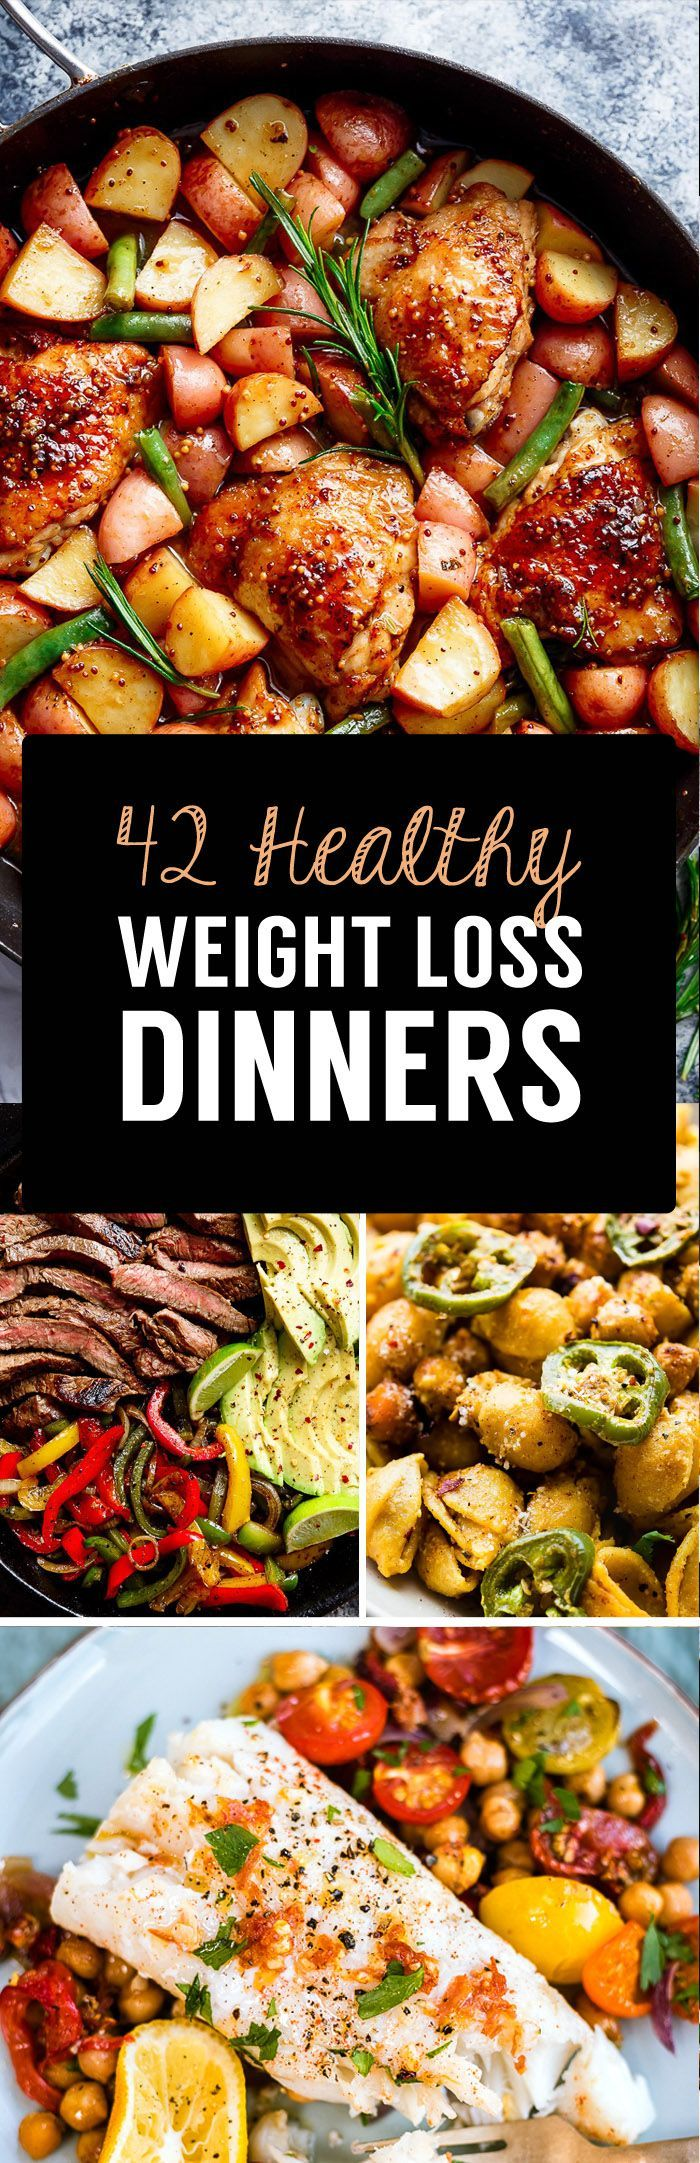 42 Weight Loss Dinner Recipes That Will Help You Shrink Belly Fat! - TrimmedandToned